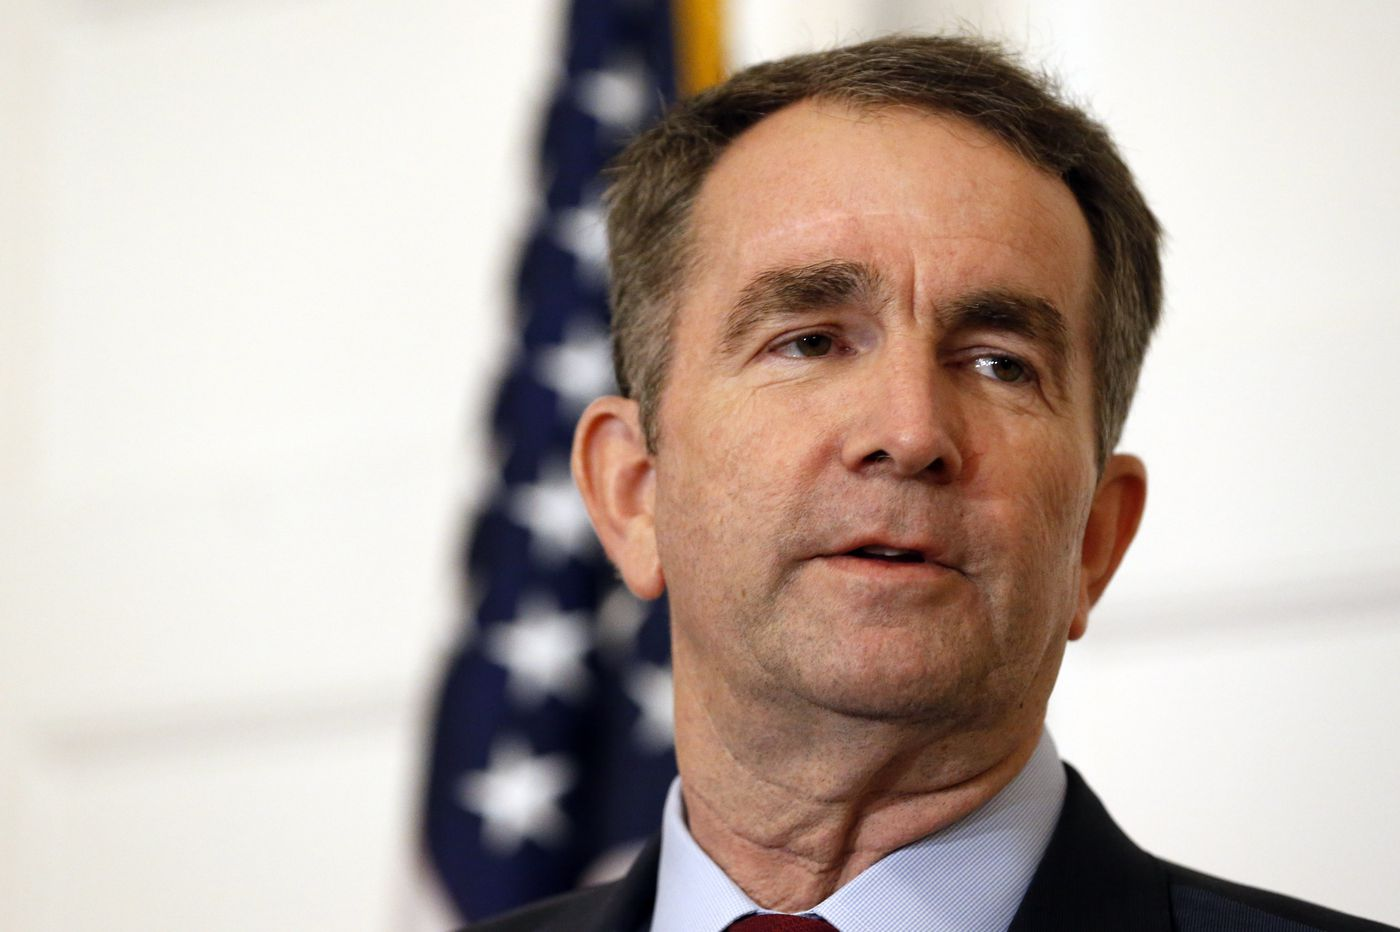 Virginia Gov. Northam refuses to step down, now says it's not him in racist photo